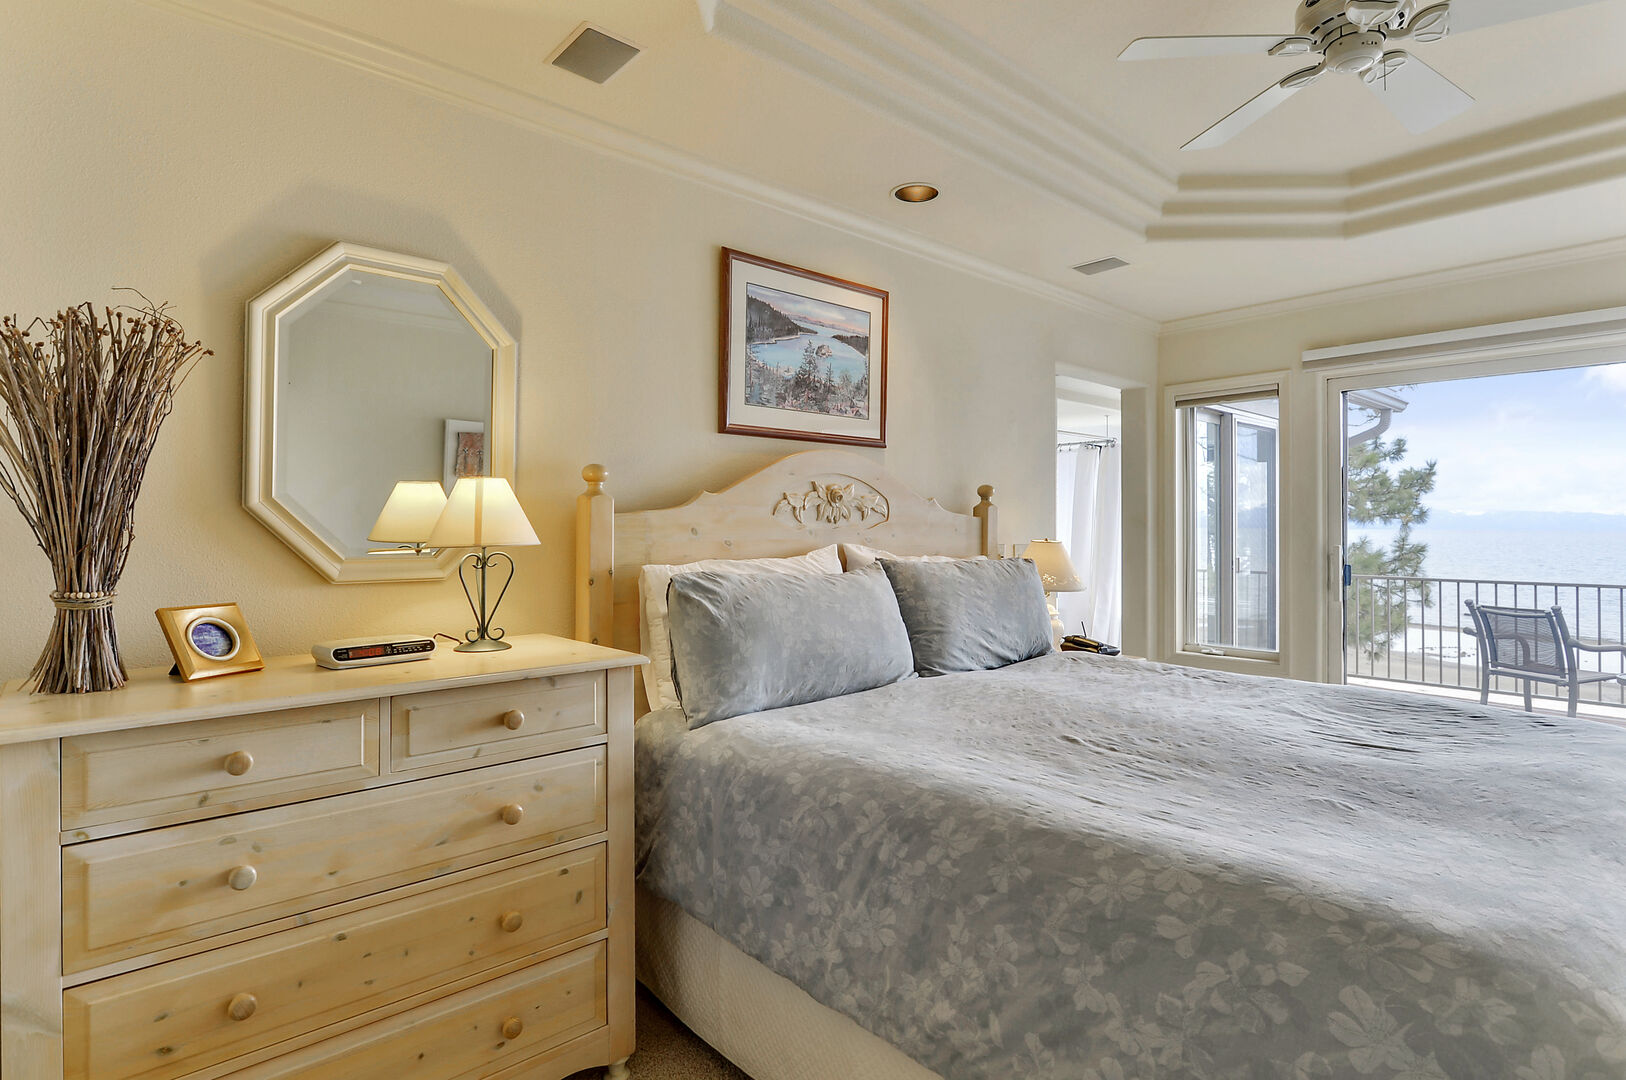 Large Bed, Drawer Dresser, Mirror, Lamp, Window to the Balcony, and Ceiling Fan.